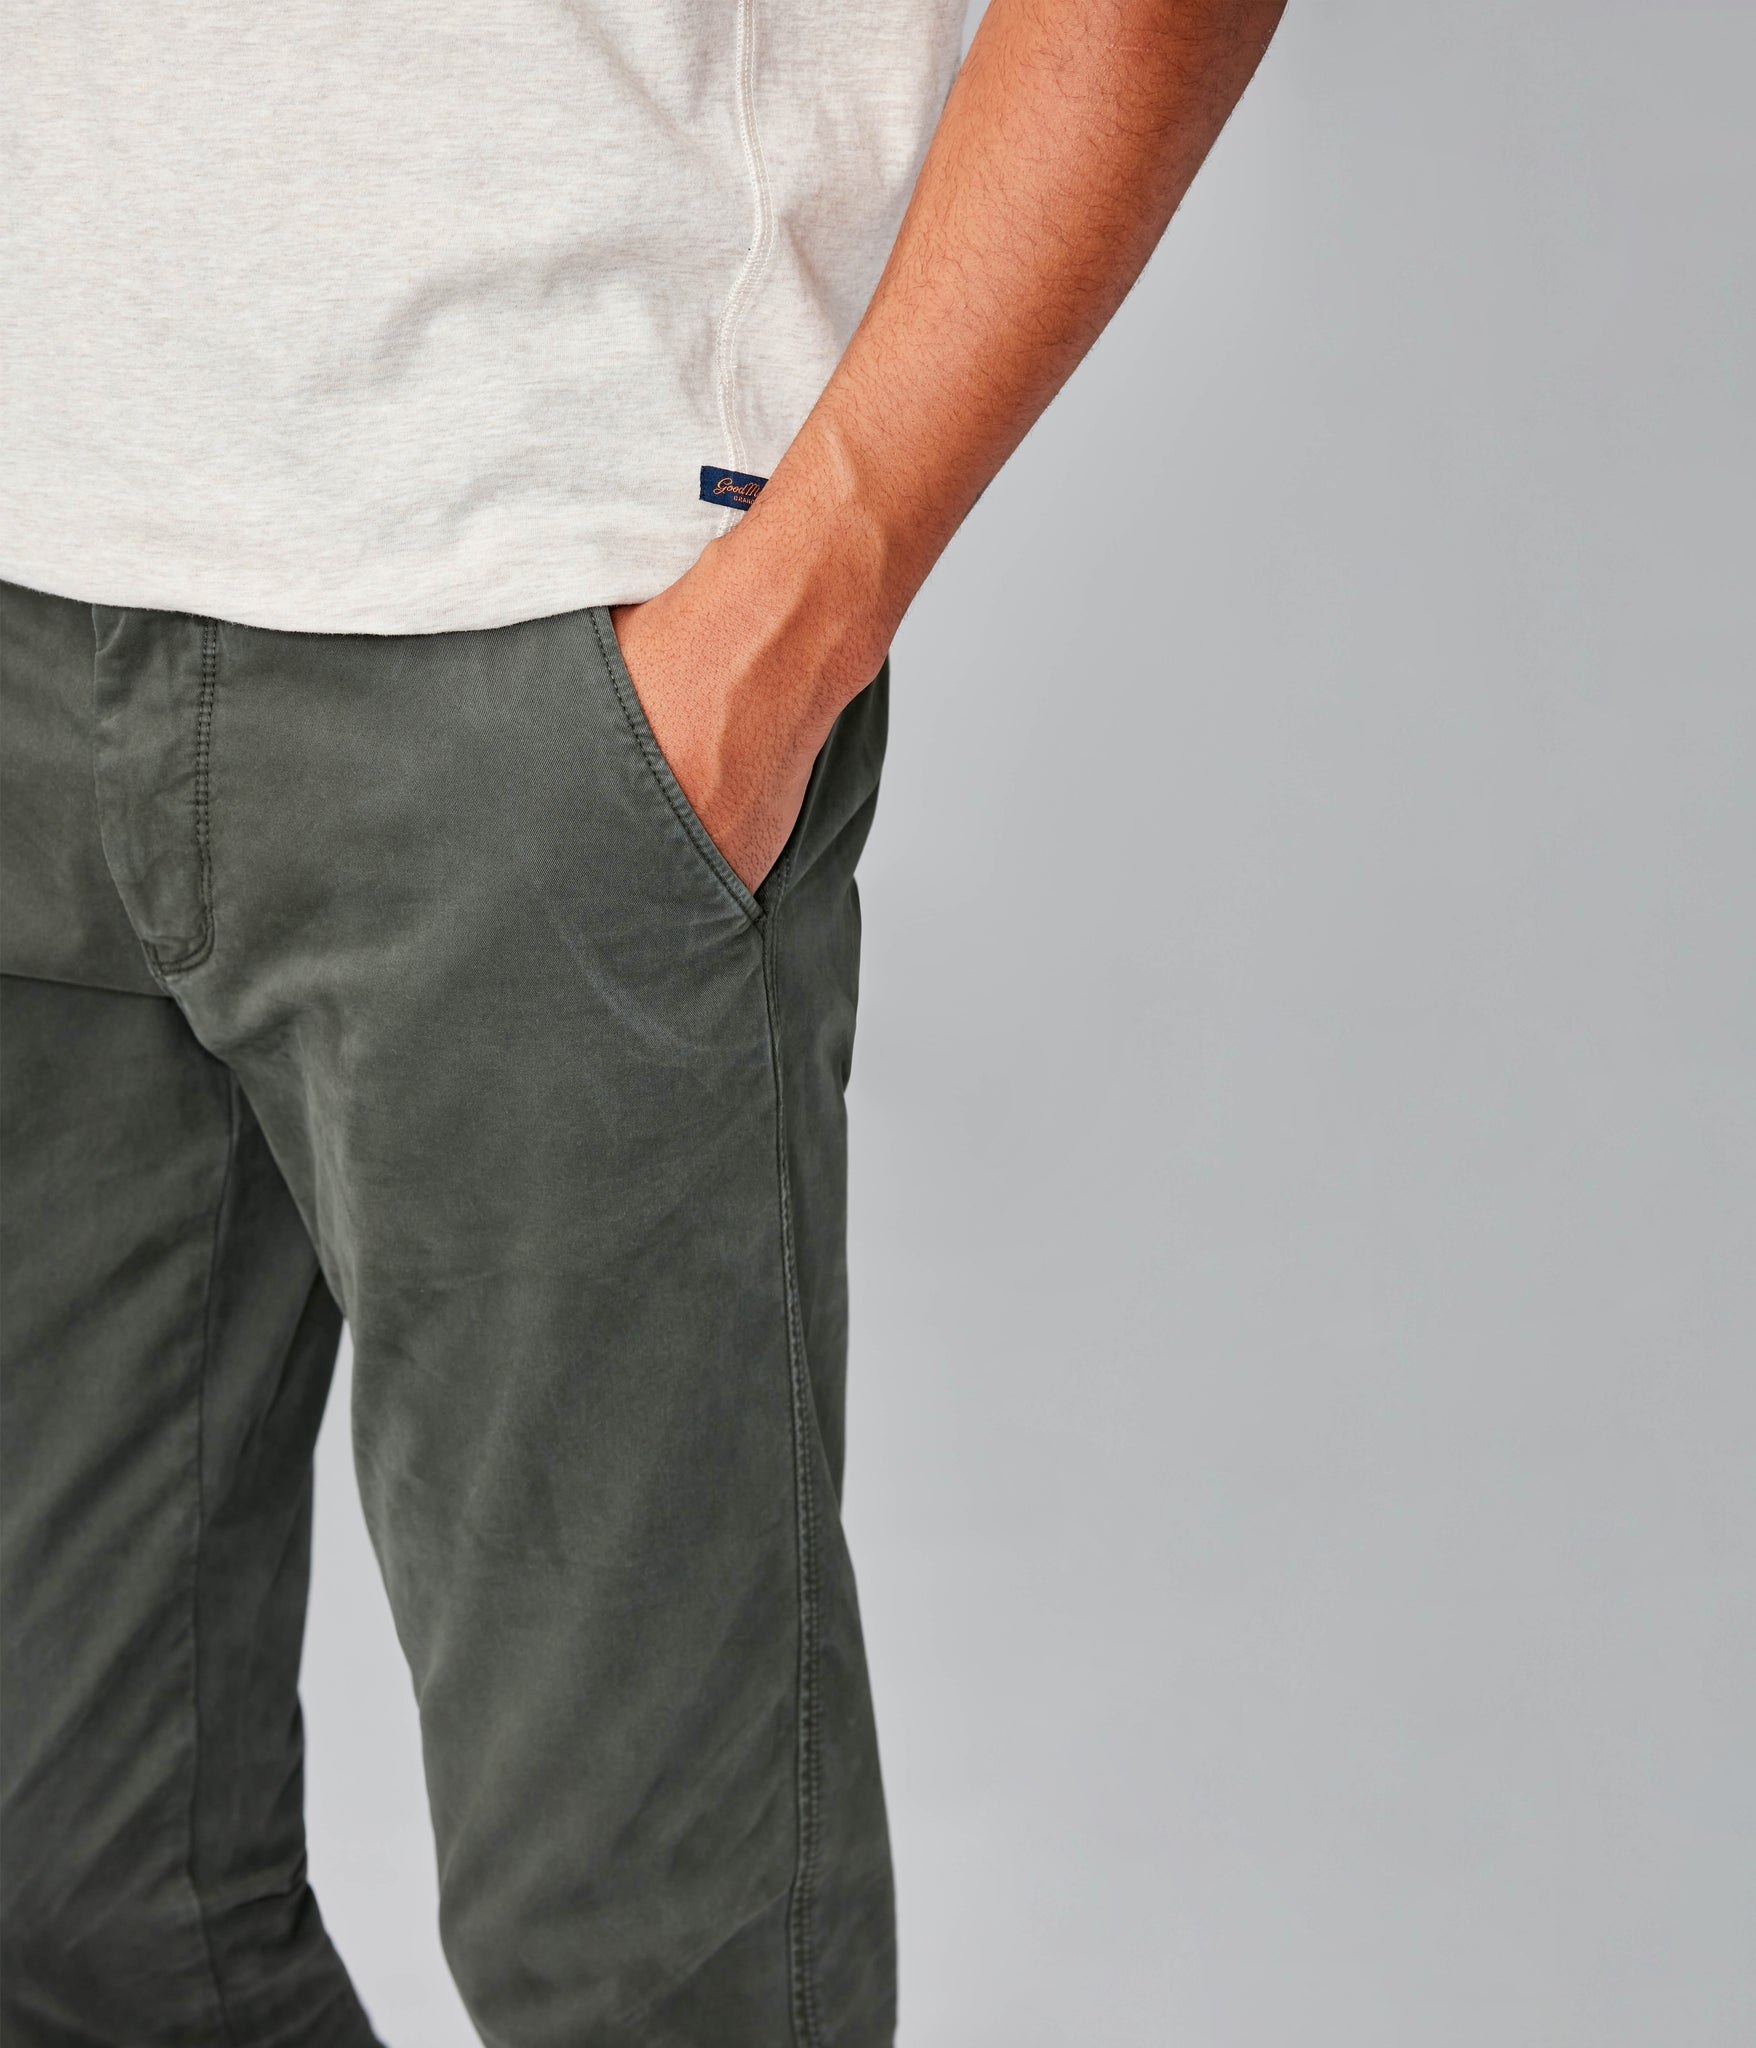 Star Chino in Pro Stretch Twill - Military Green